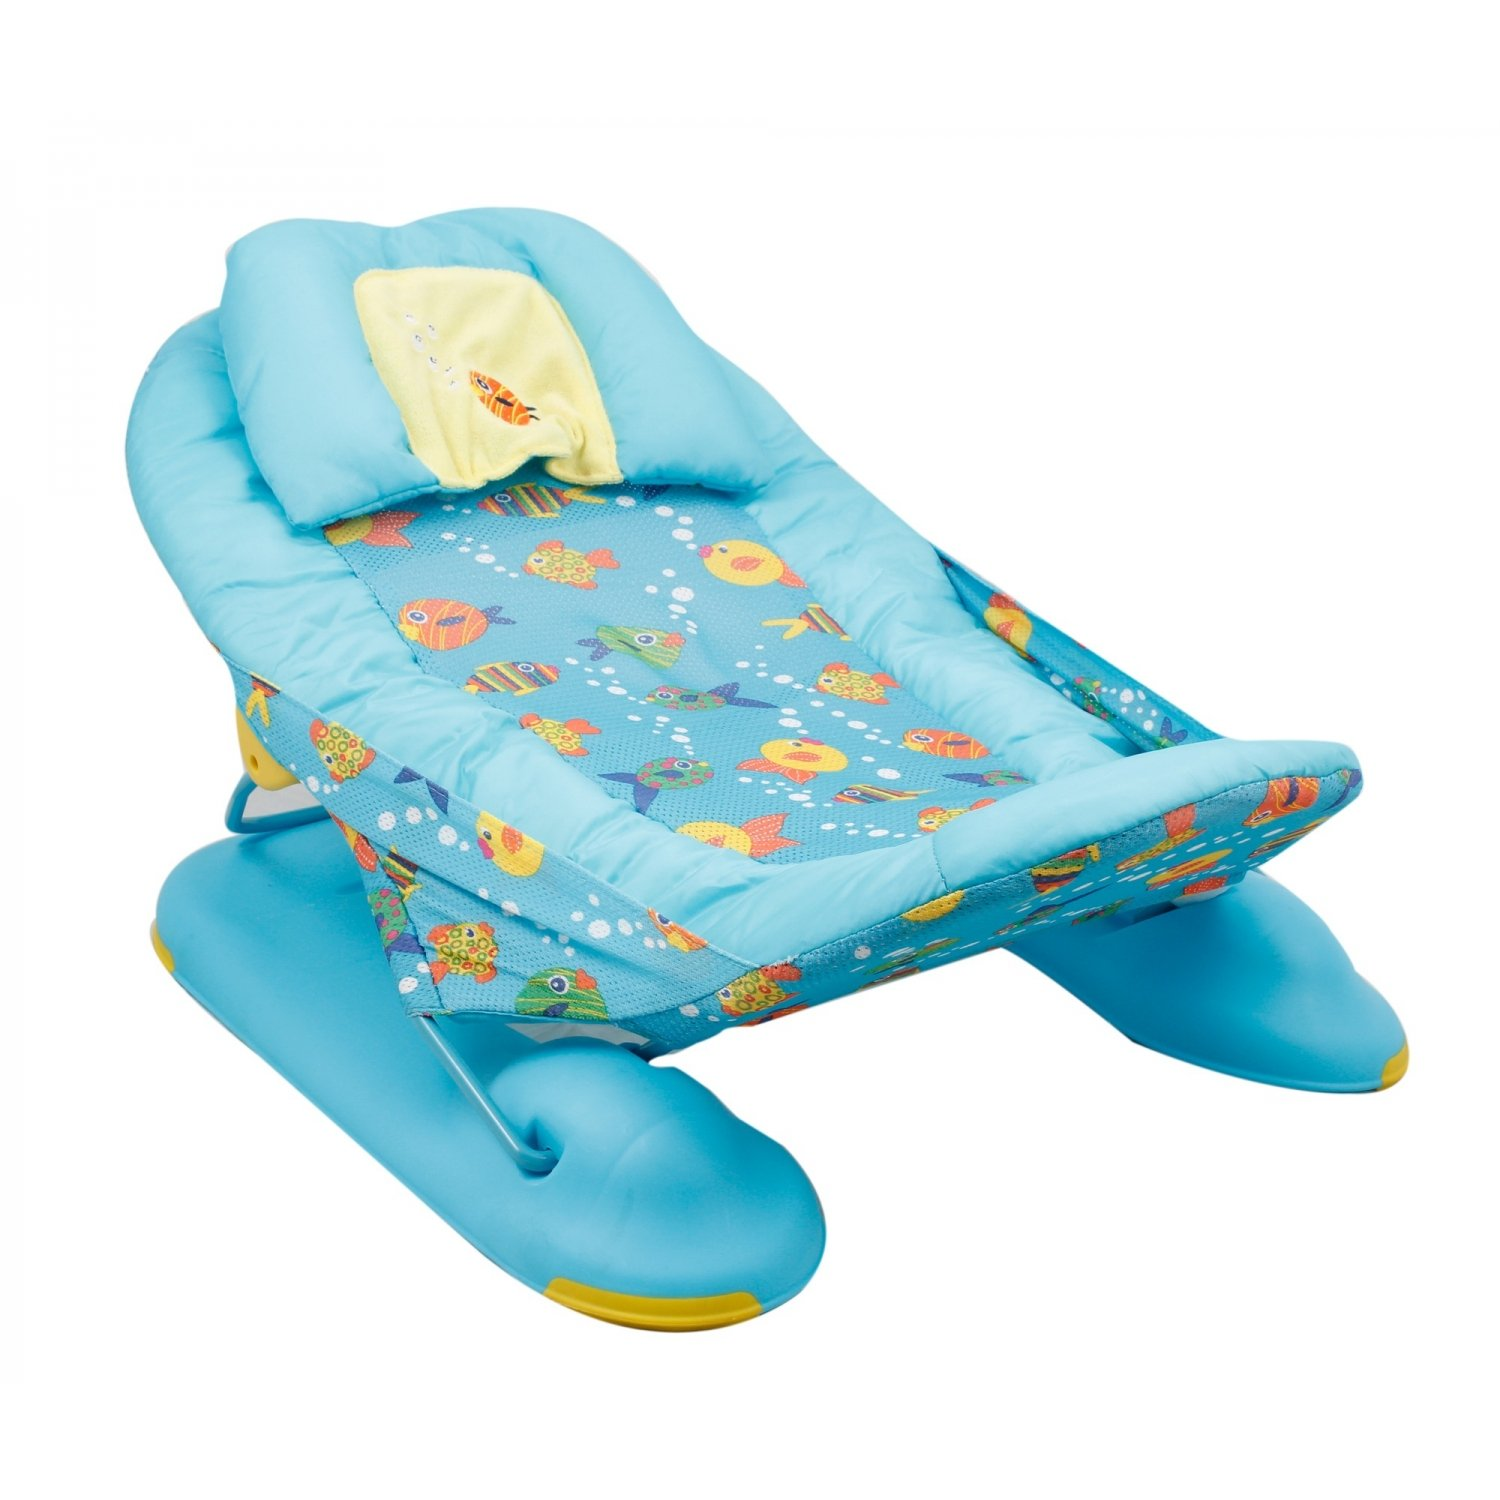 Buy Carters Large Comfort Bather - Light Blue, 0M+ Online at Low ...